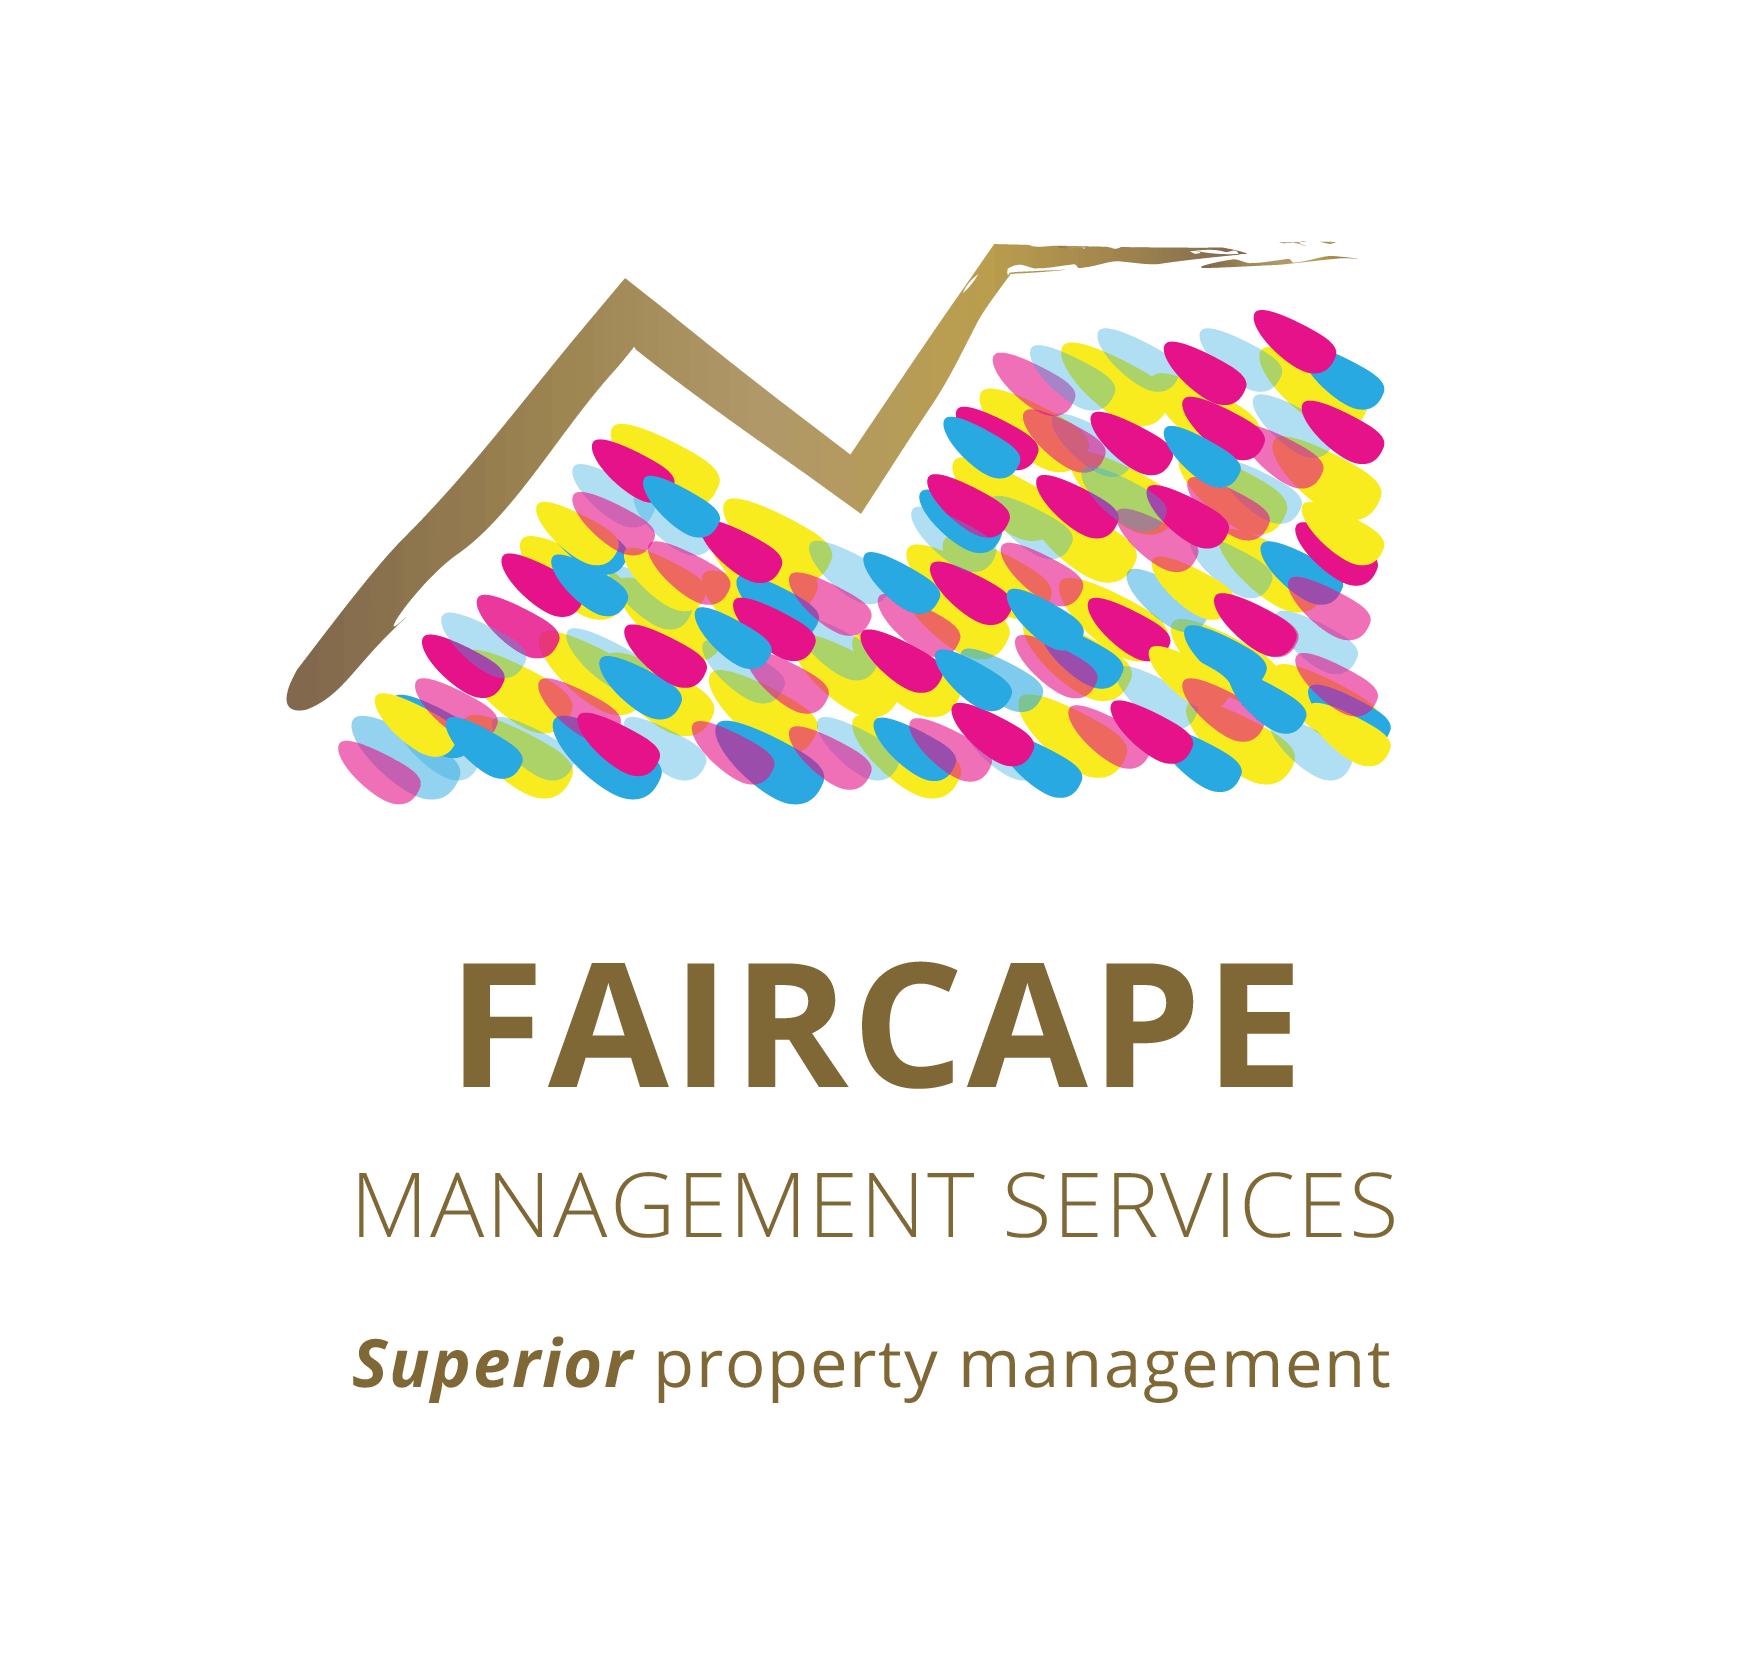 Faircape Management Services